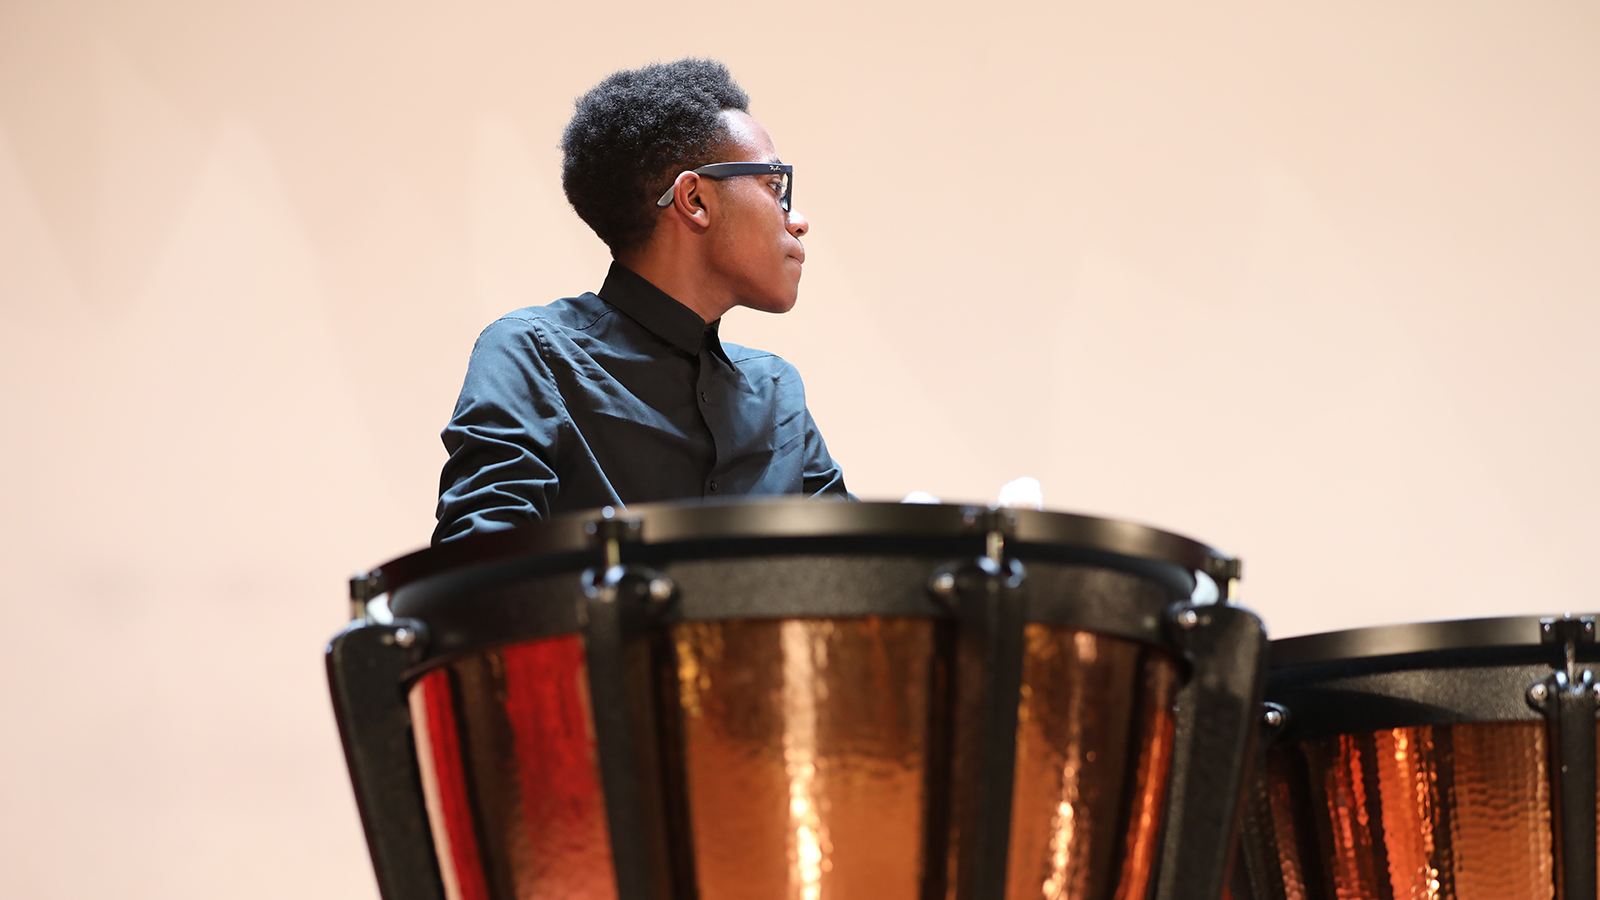 student next to a drum